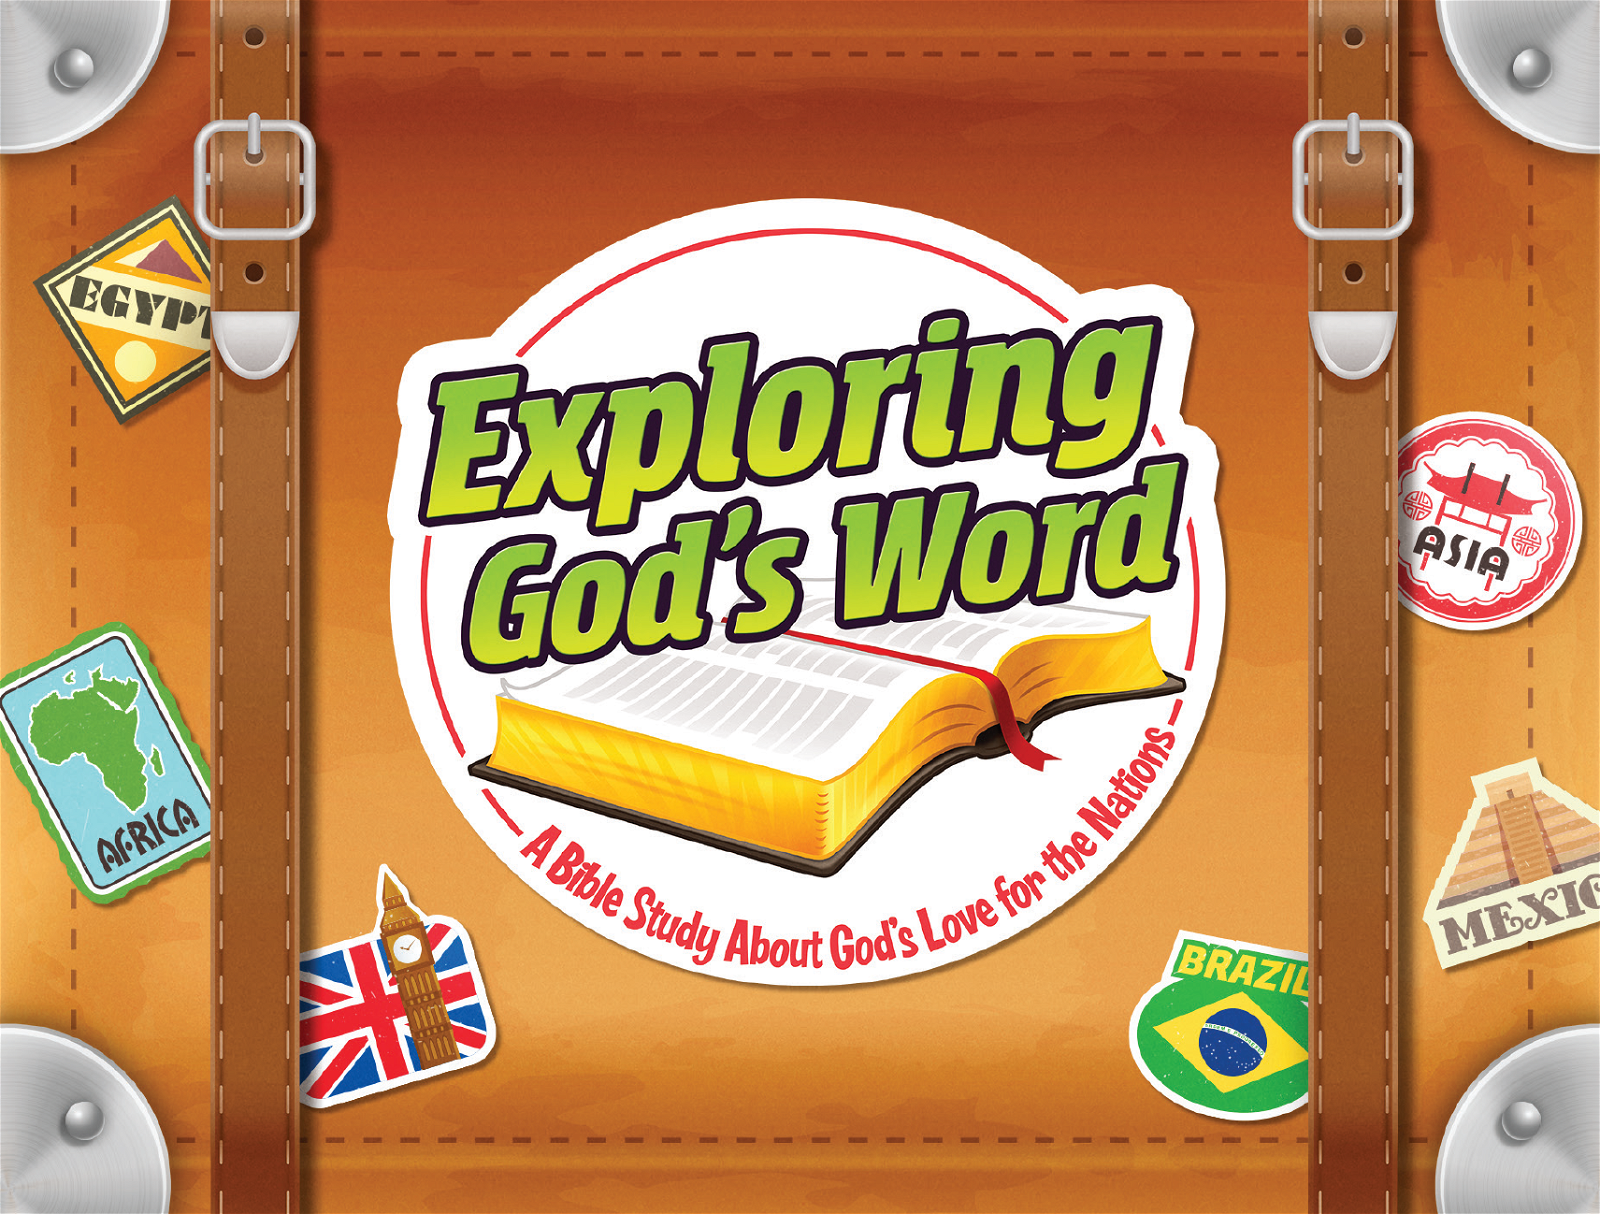 Exploring God's Word: A Bible Study About God's Love for the Nations